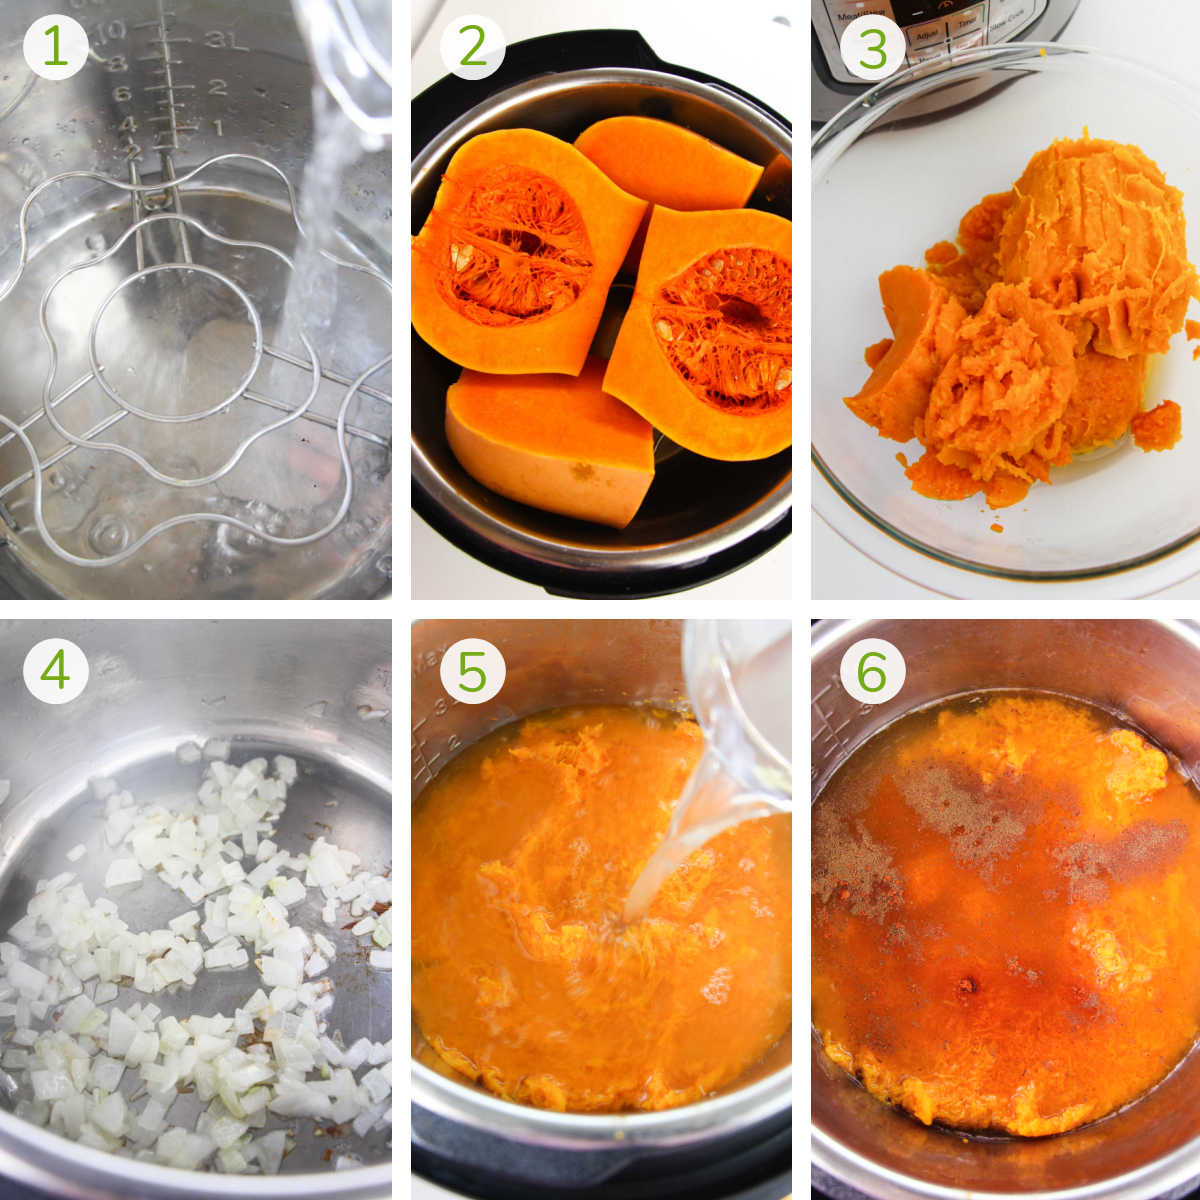 process shots showing how to steam the squash, scooping it out, sautéing onions and adding seasonings.